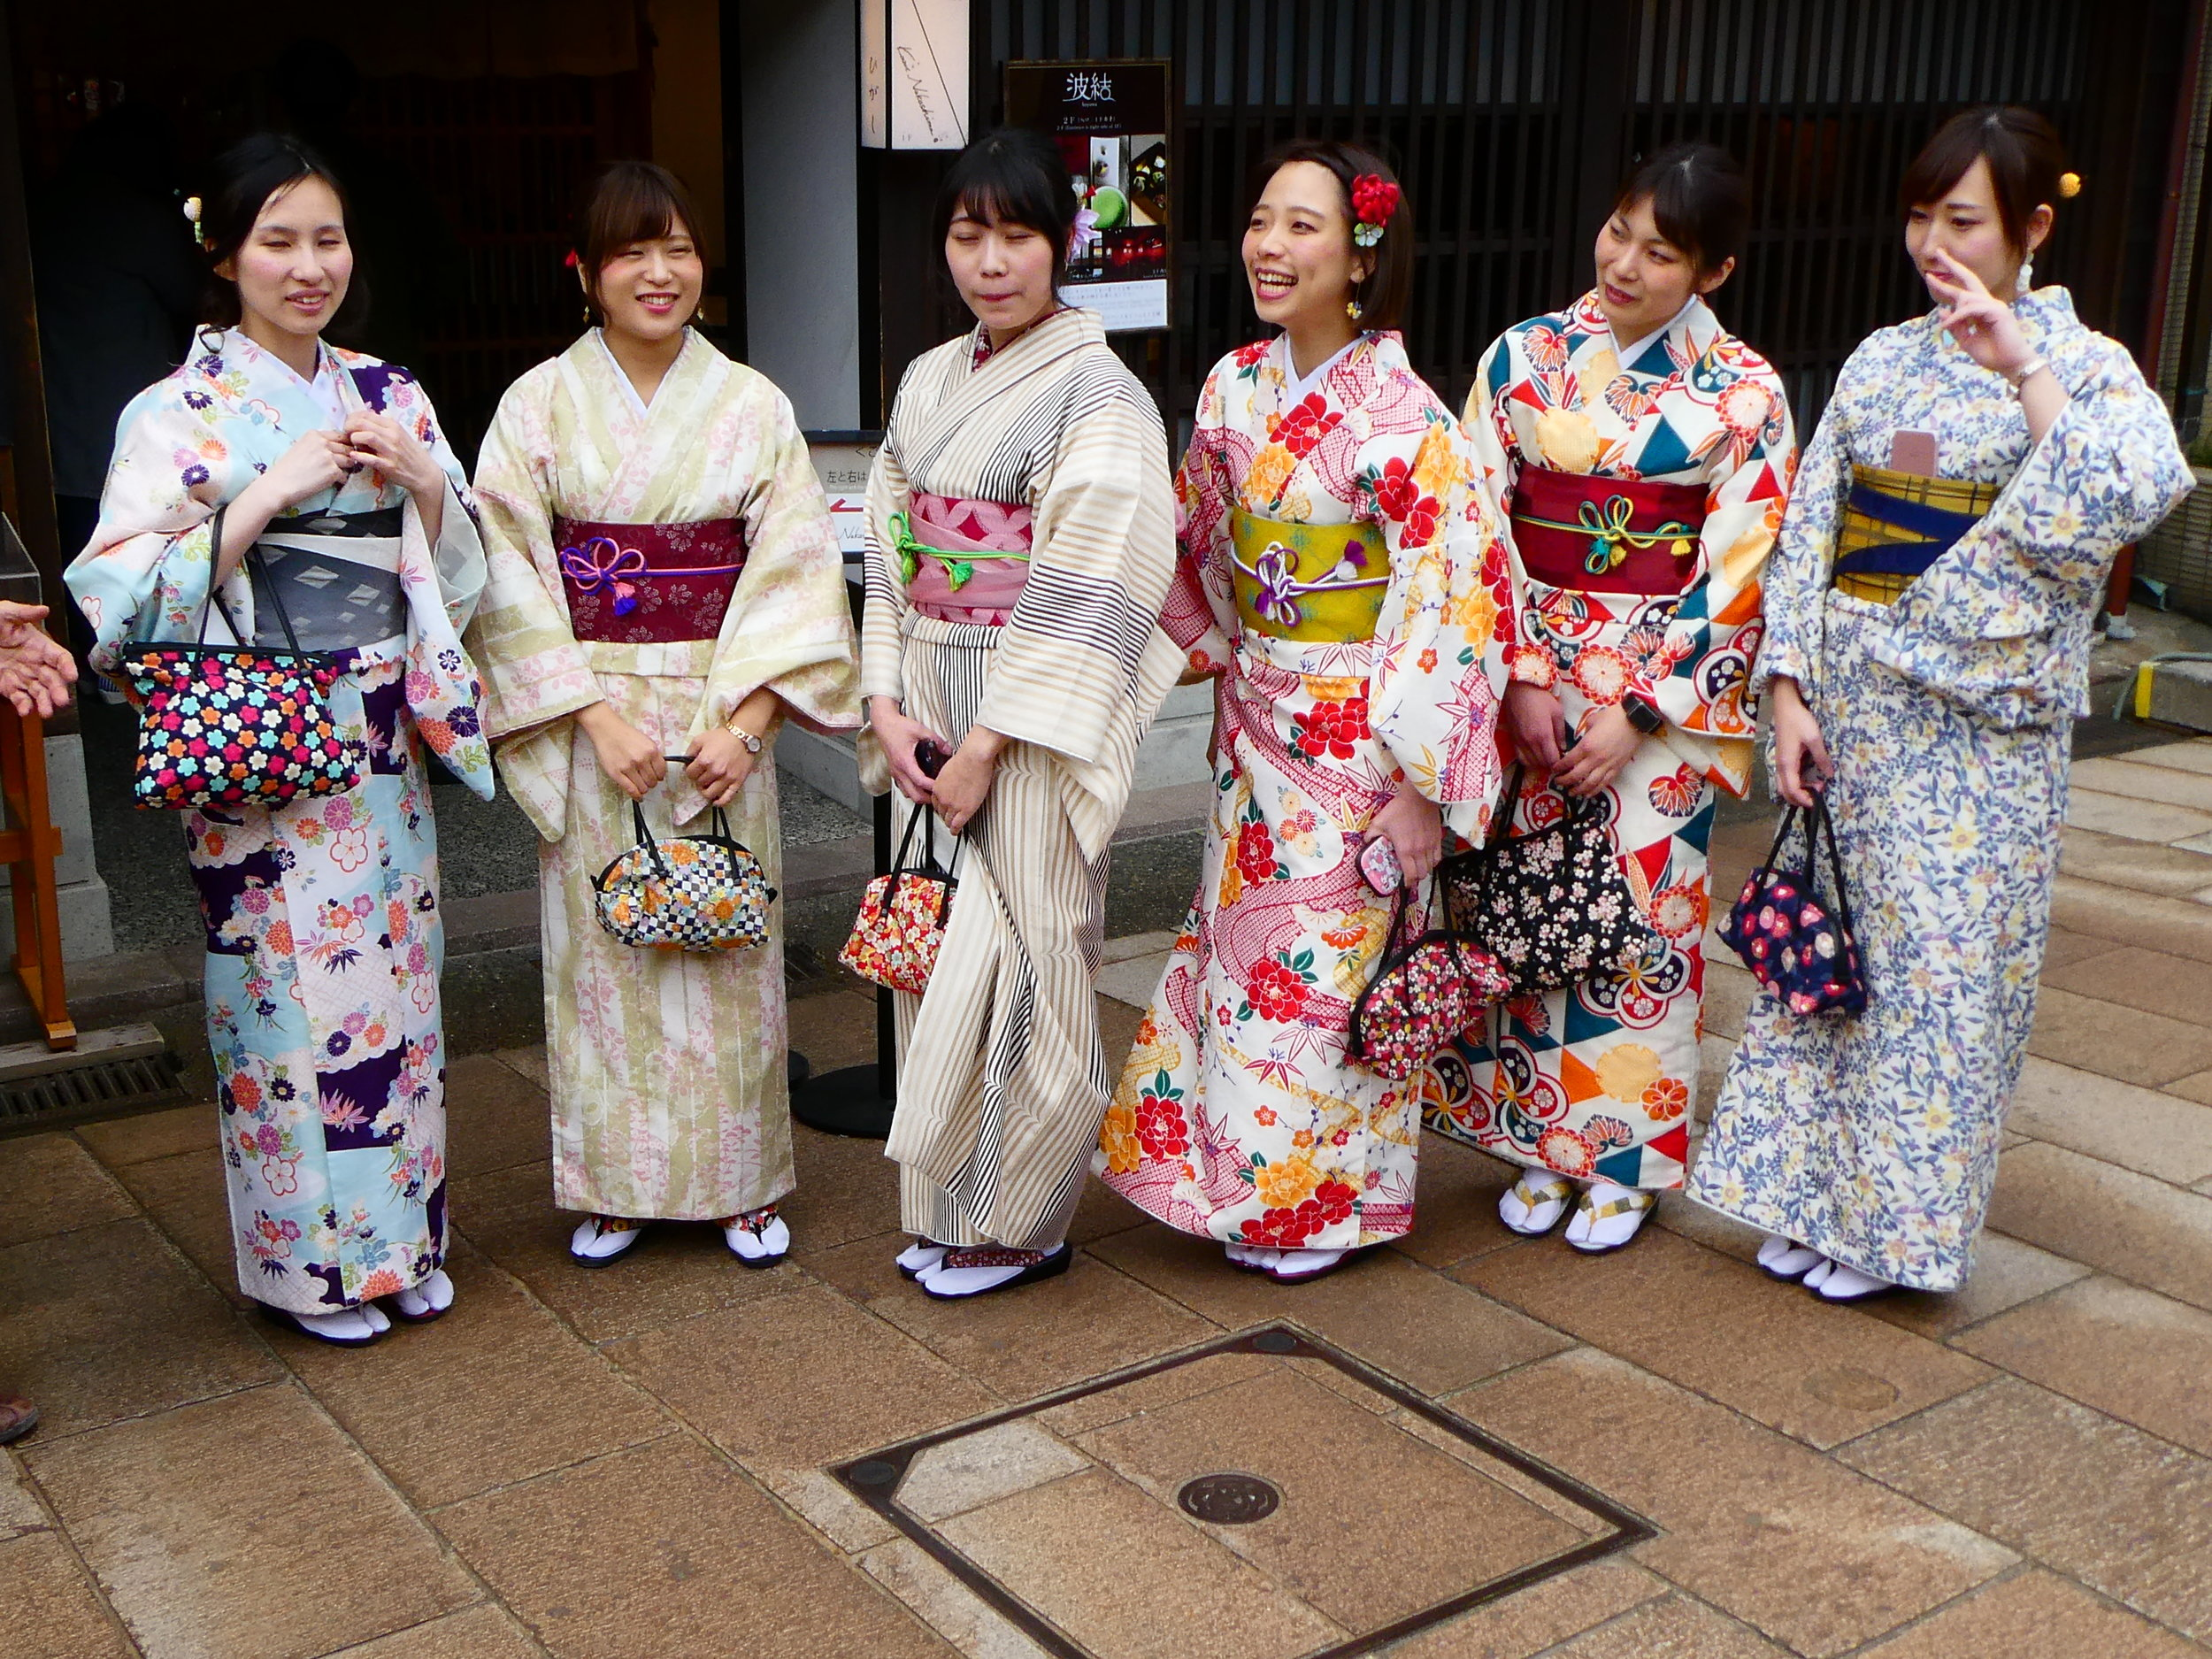 A popular thing to do is to rent kimonos. These young ladies were very willing to pose for tourists' photos.